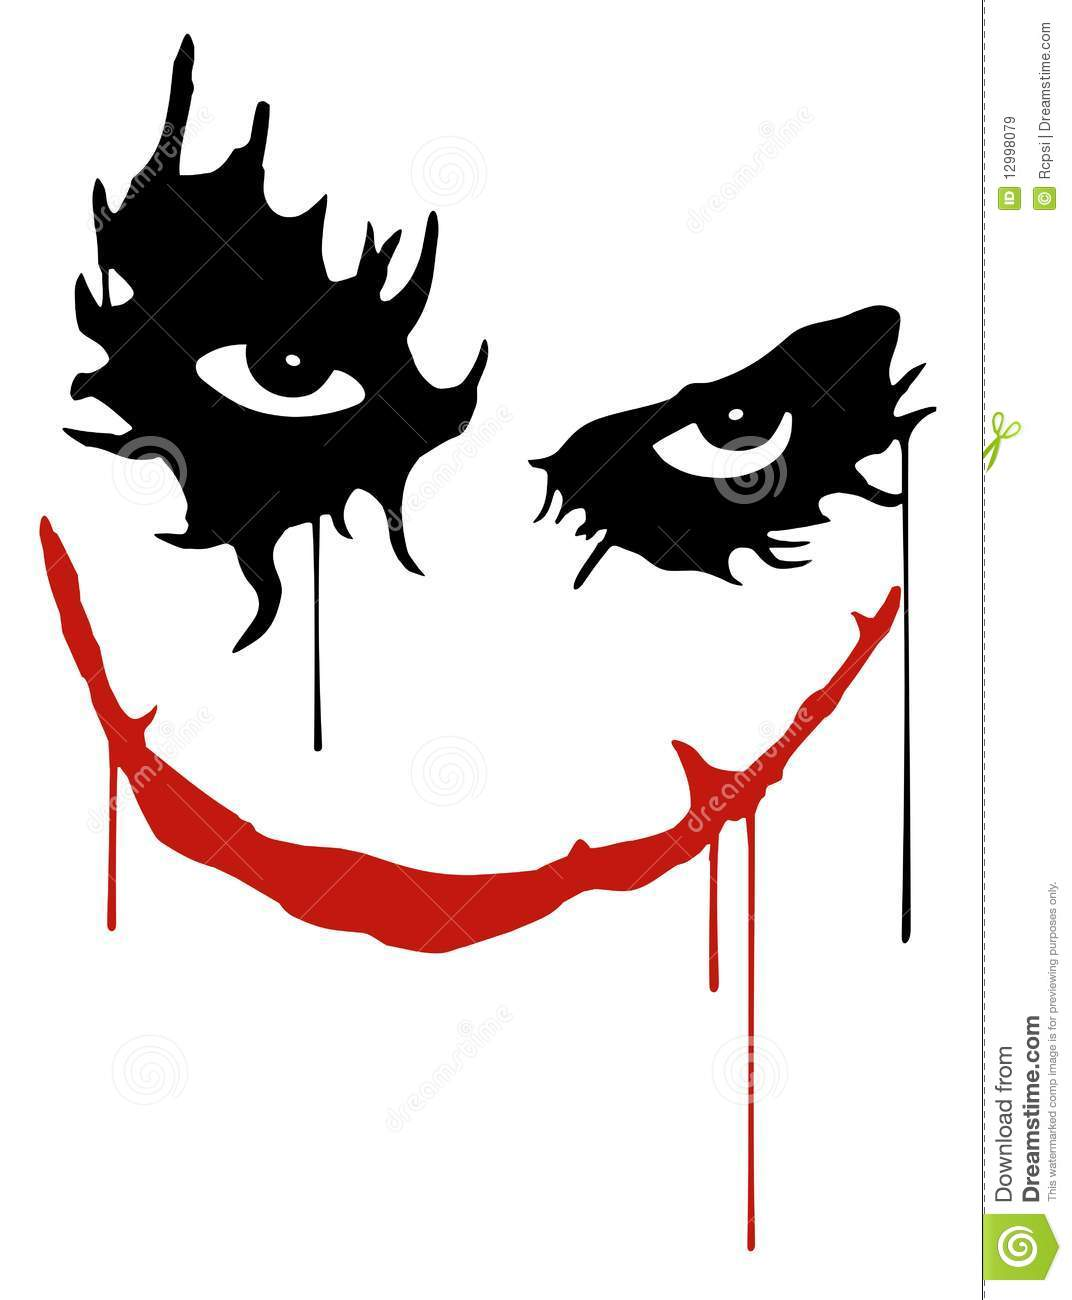 3d Clown Wallpaper Joker Smile Stock Vector Illustration Of Laugh Clown